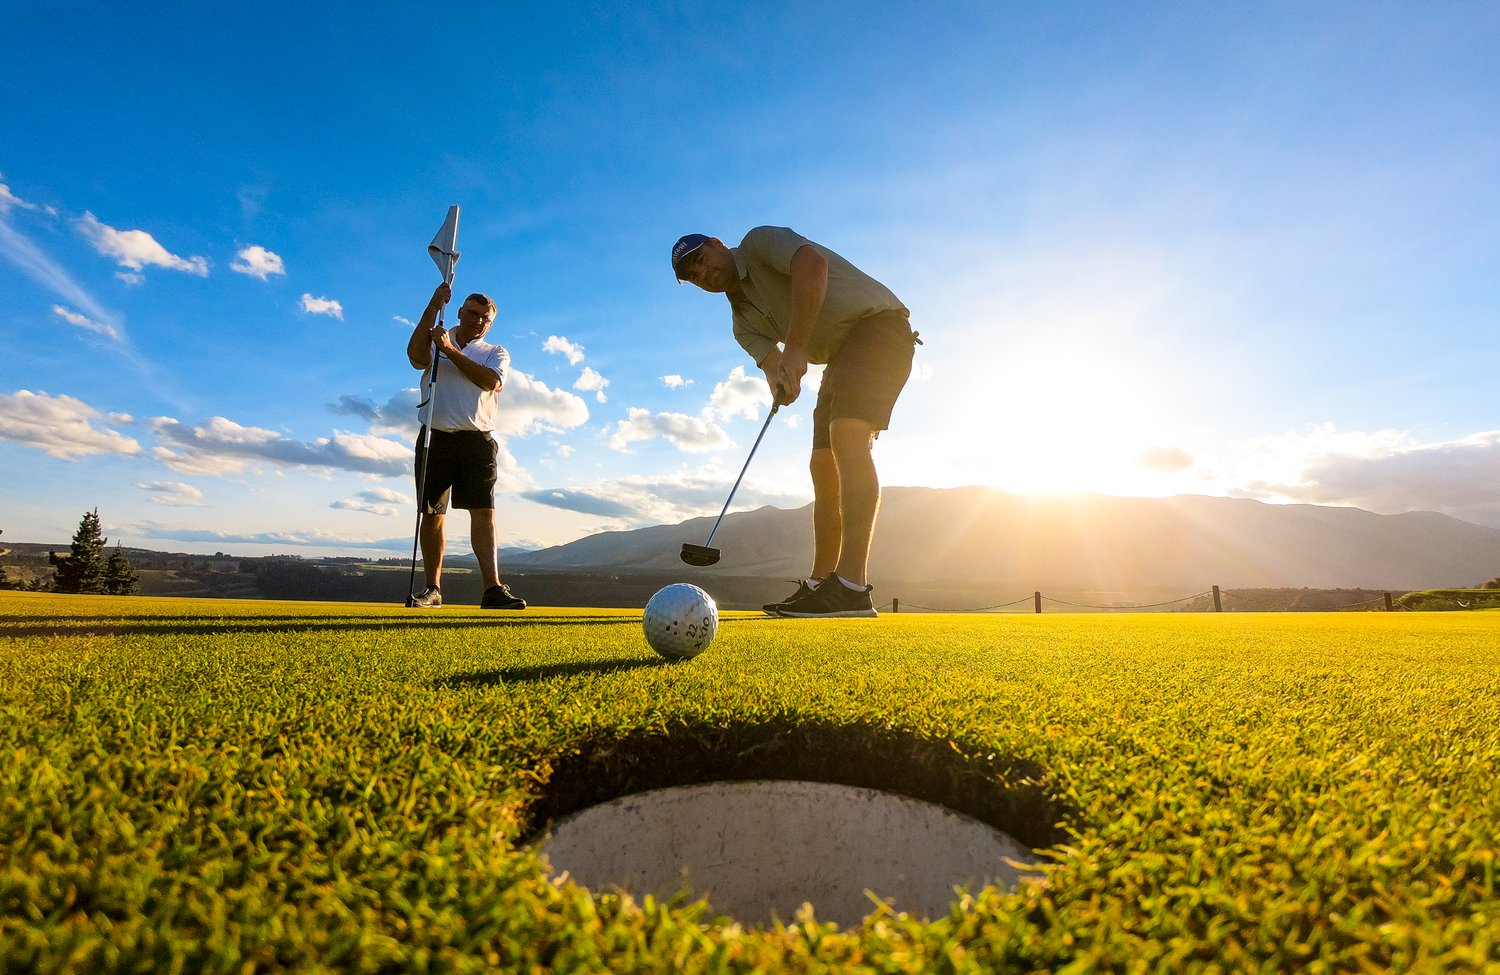 Golf clubs in picturesque surroundings with well-kept greens